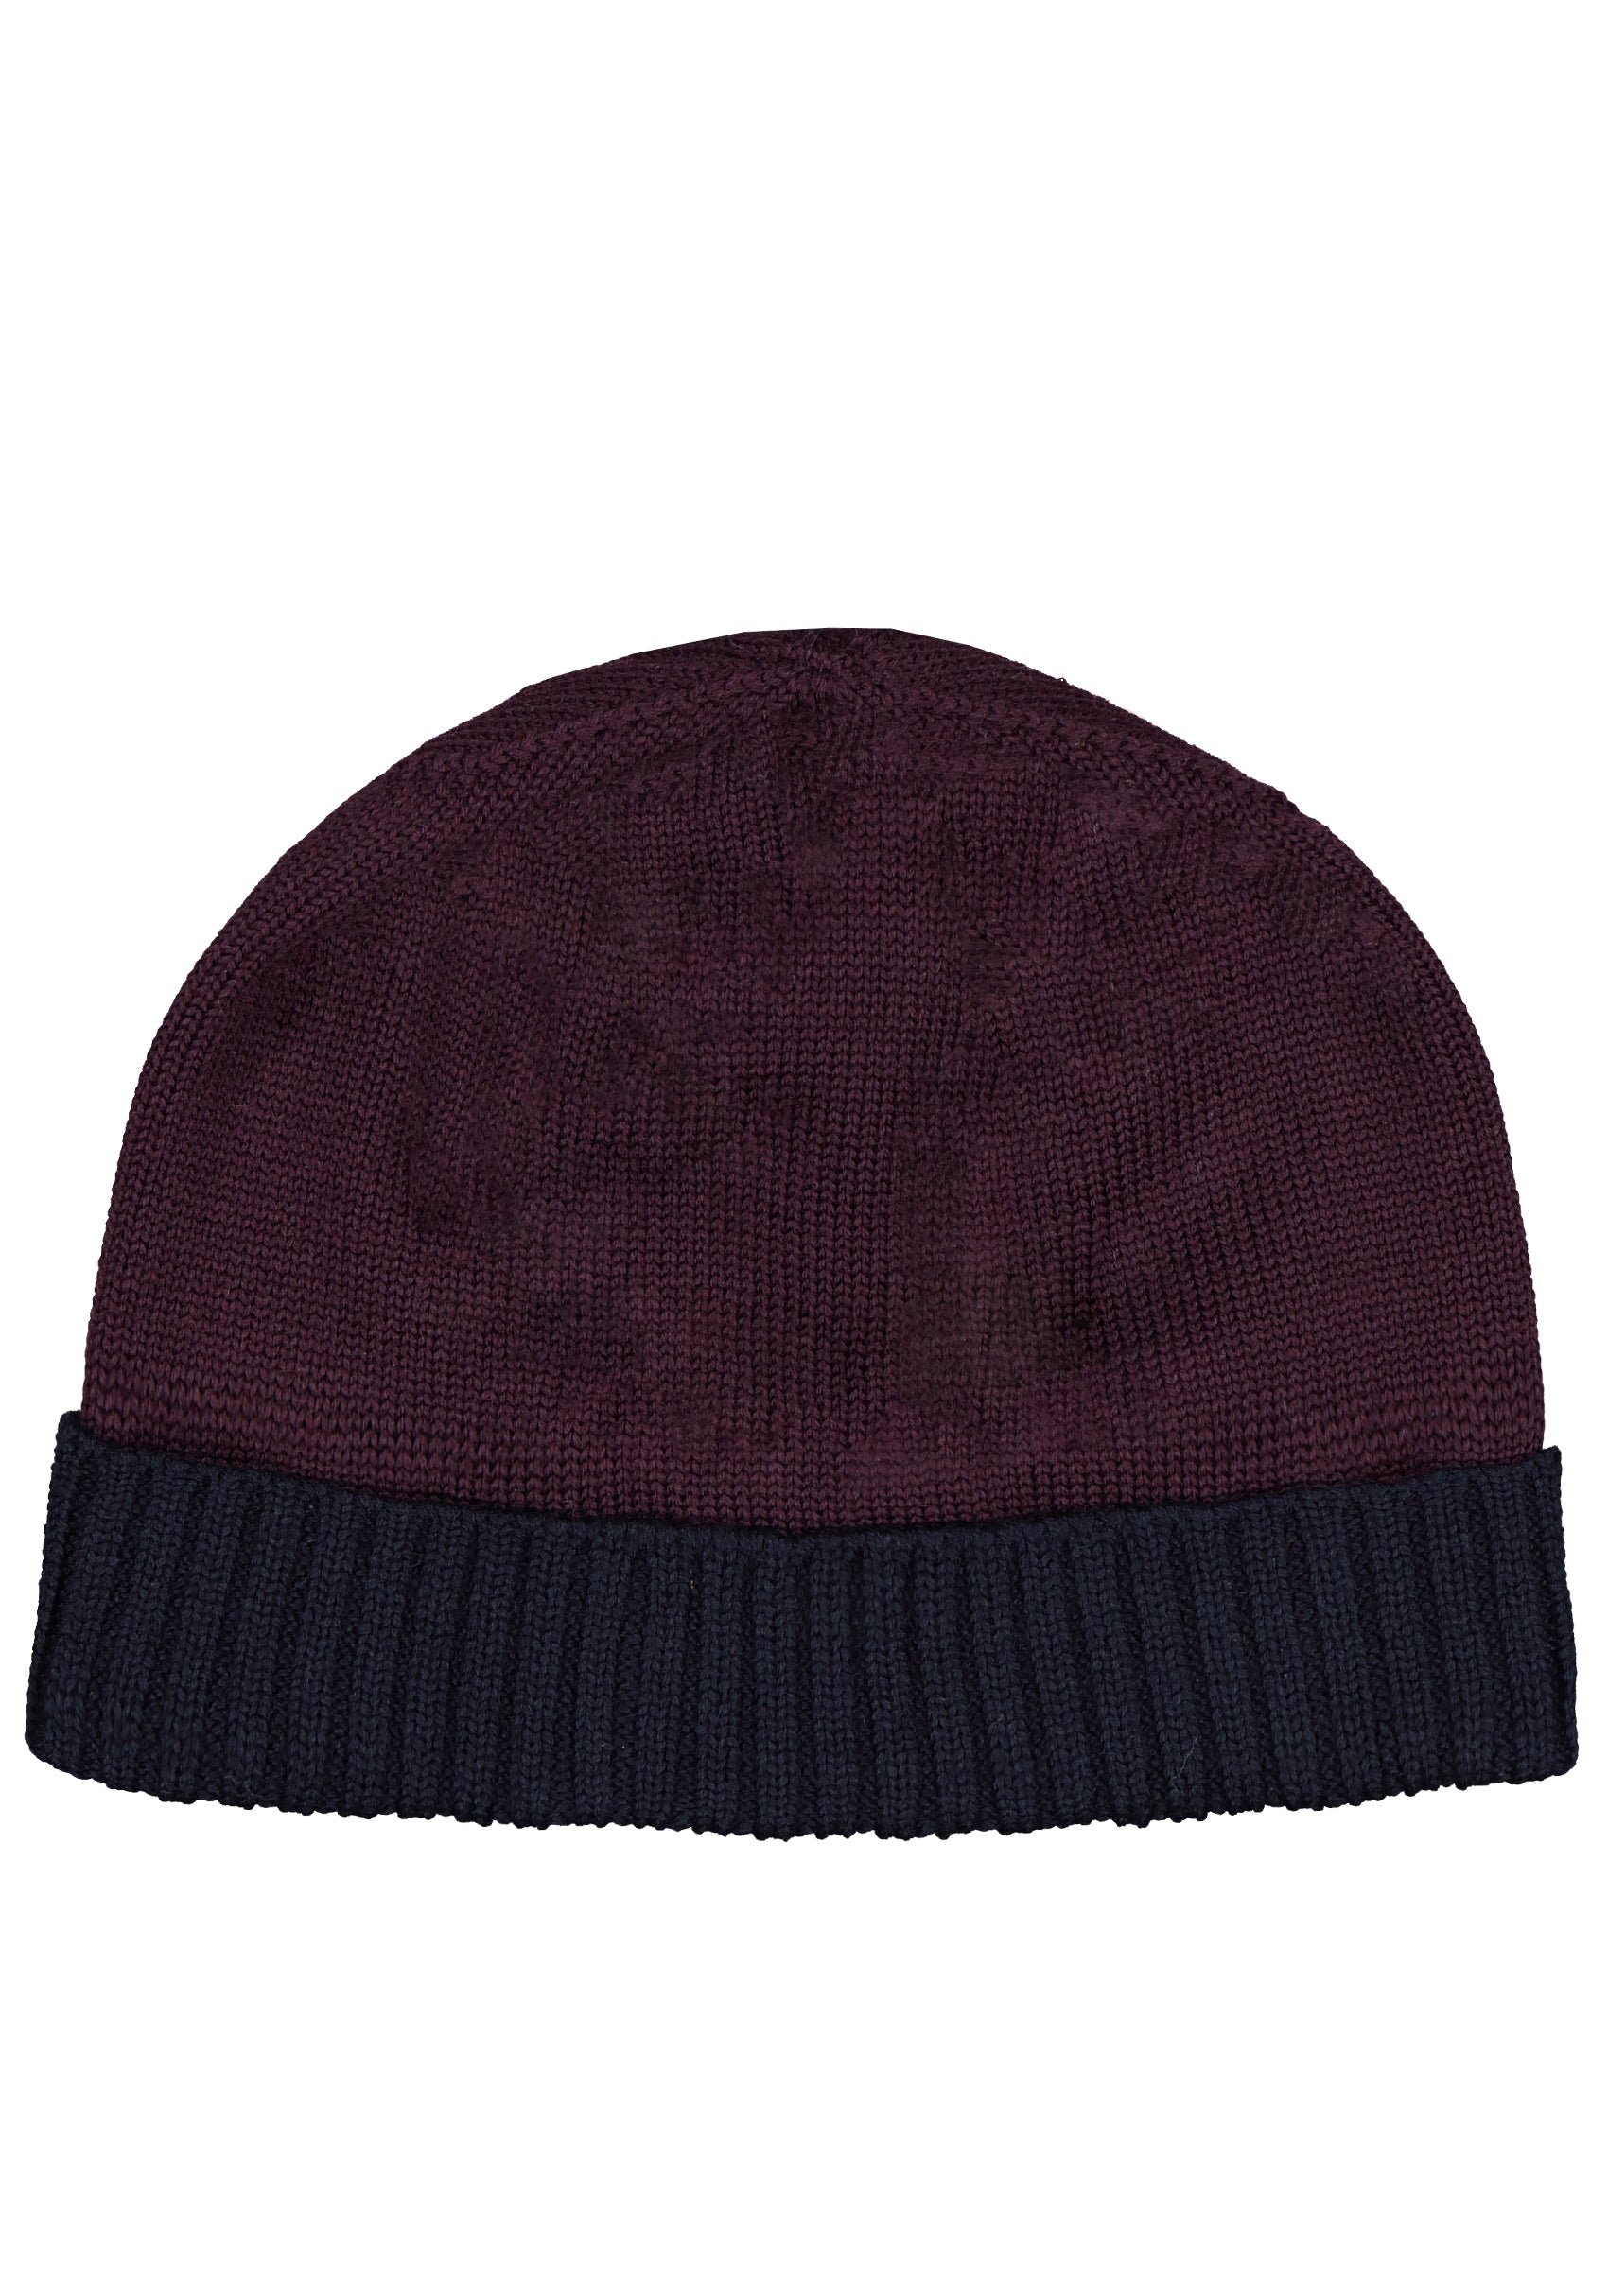 Two Tone Beanie in Navy- Balsamic